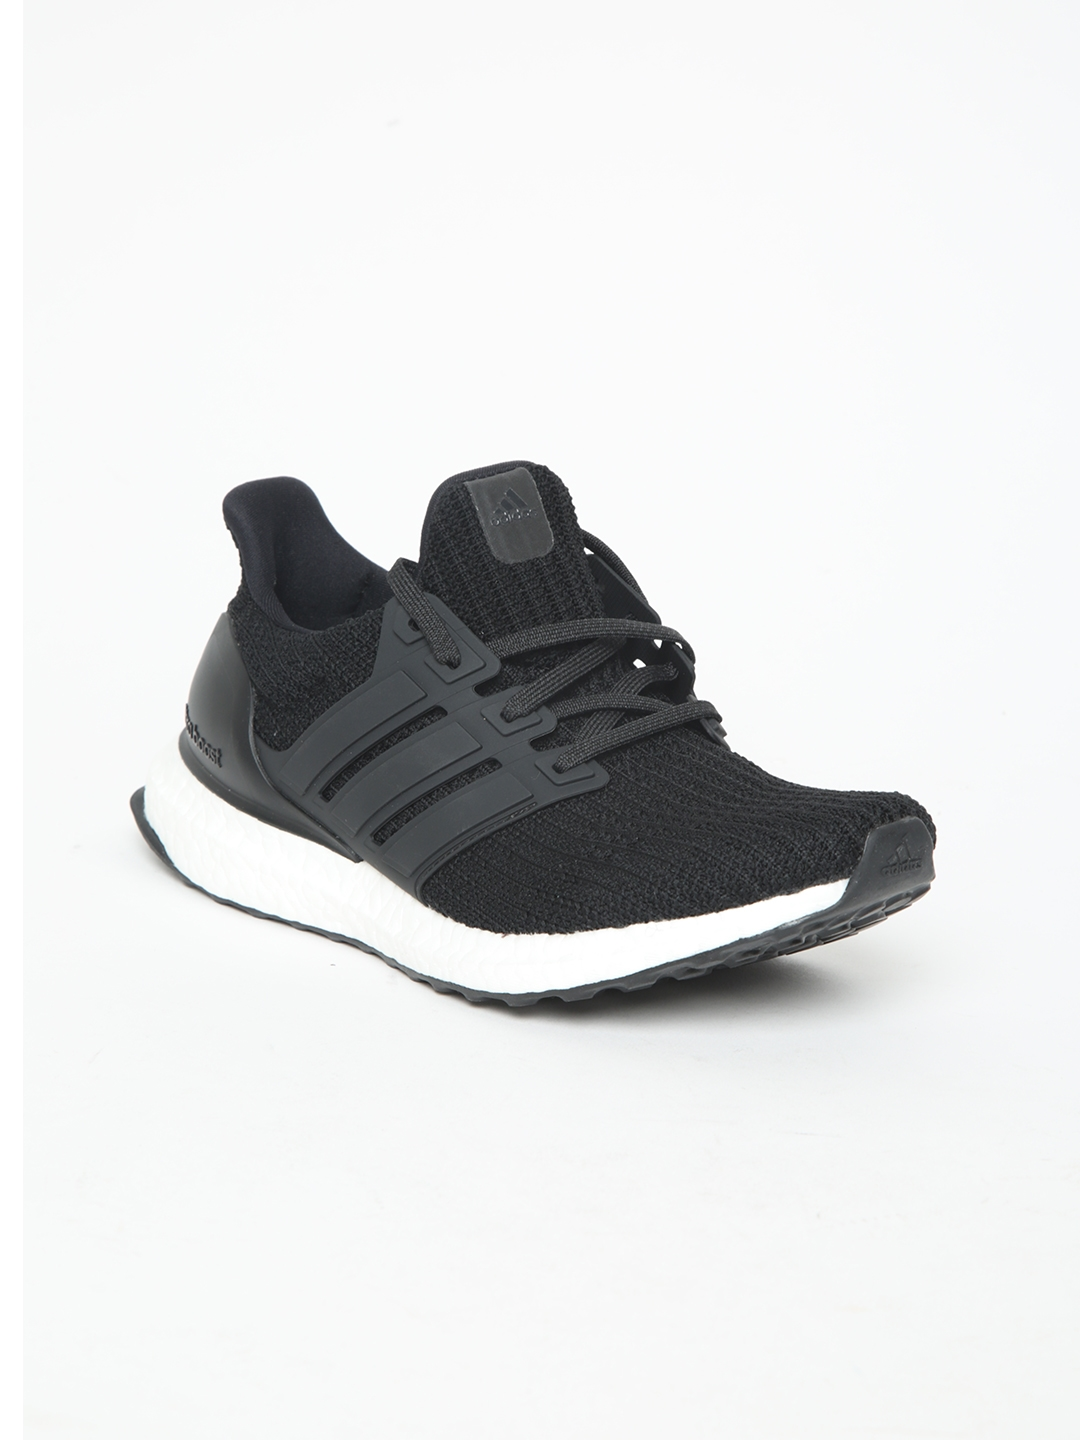 2c7ffc238 Buy ADIDAS Women Black Ultraboost Running Shoes - Sports Shoes for ...